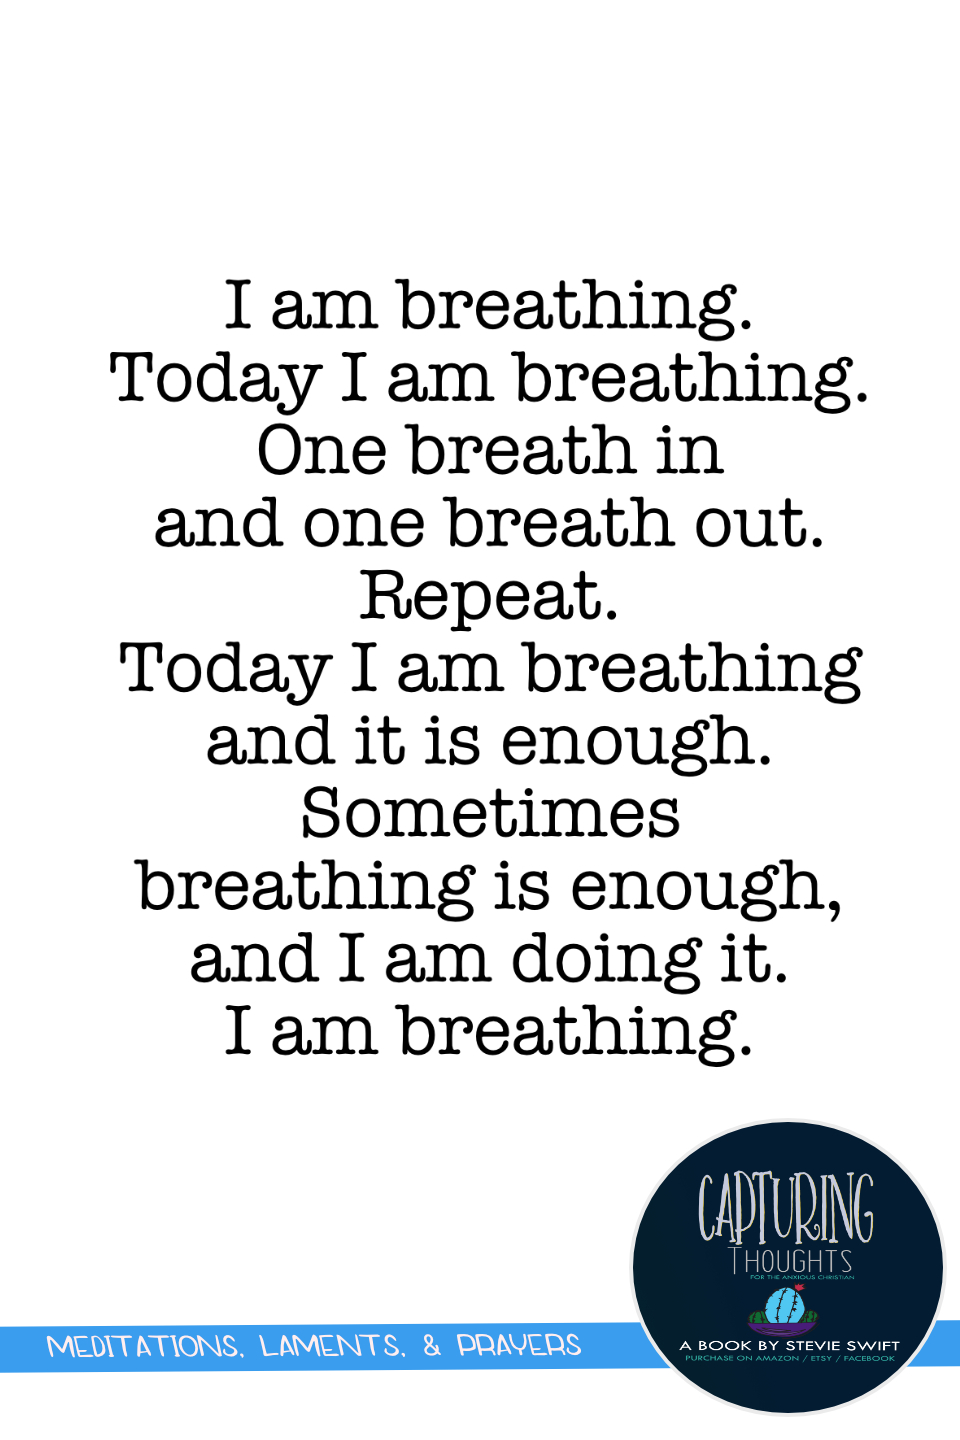 i am breathing. today i am breathing. one breath in and one breath out. repeat. today i am breathing and it is enough. sometimes breathing is enough, and I am doing it. I am breathing.